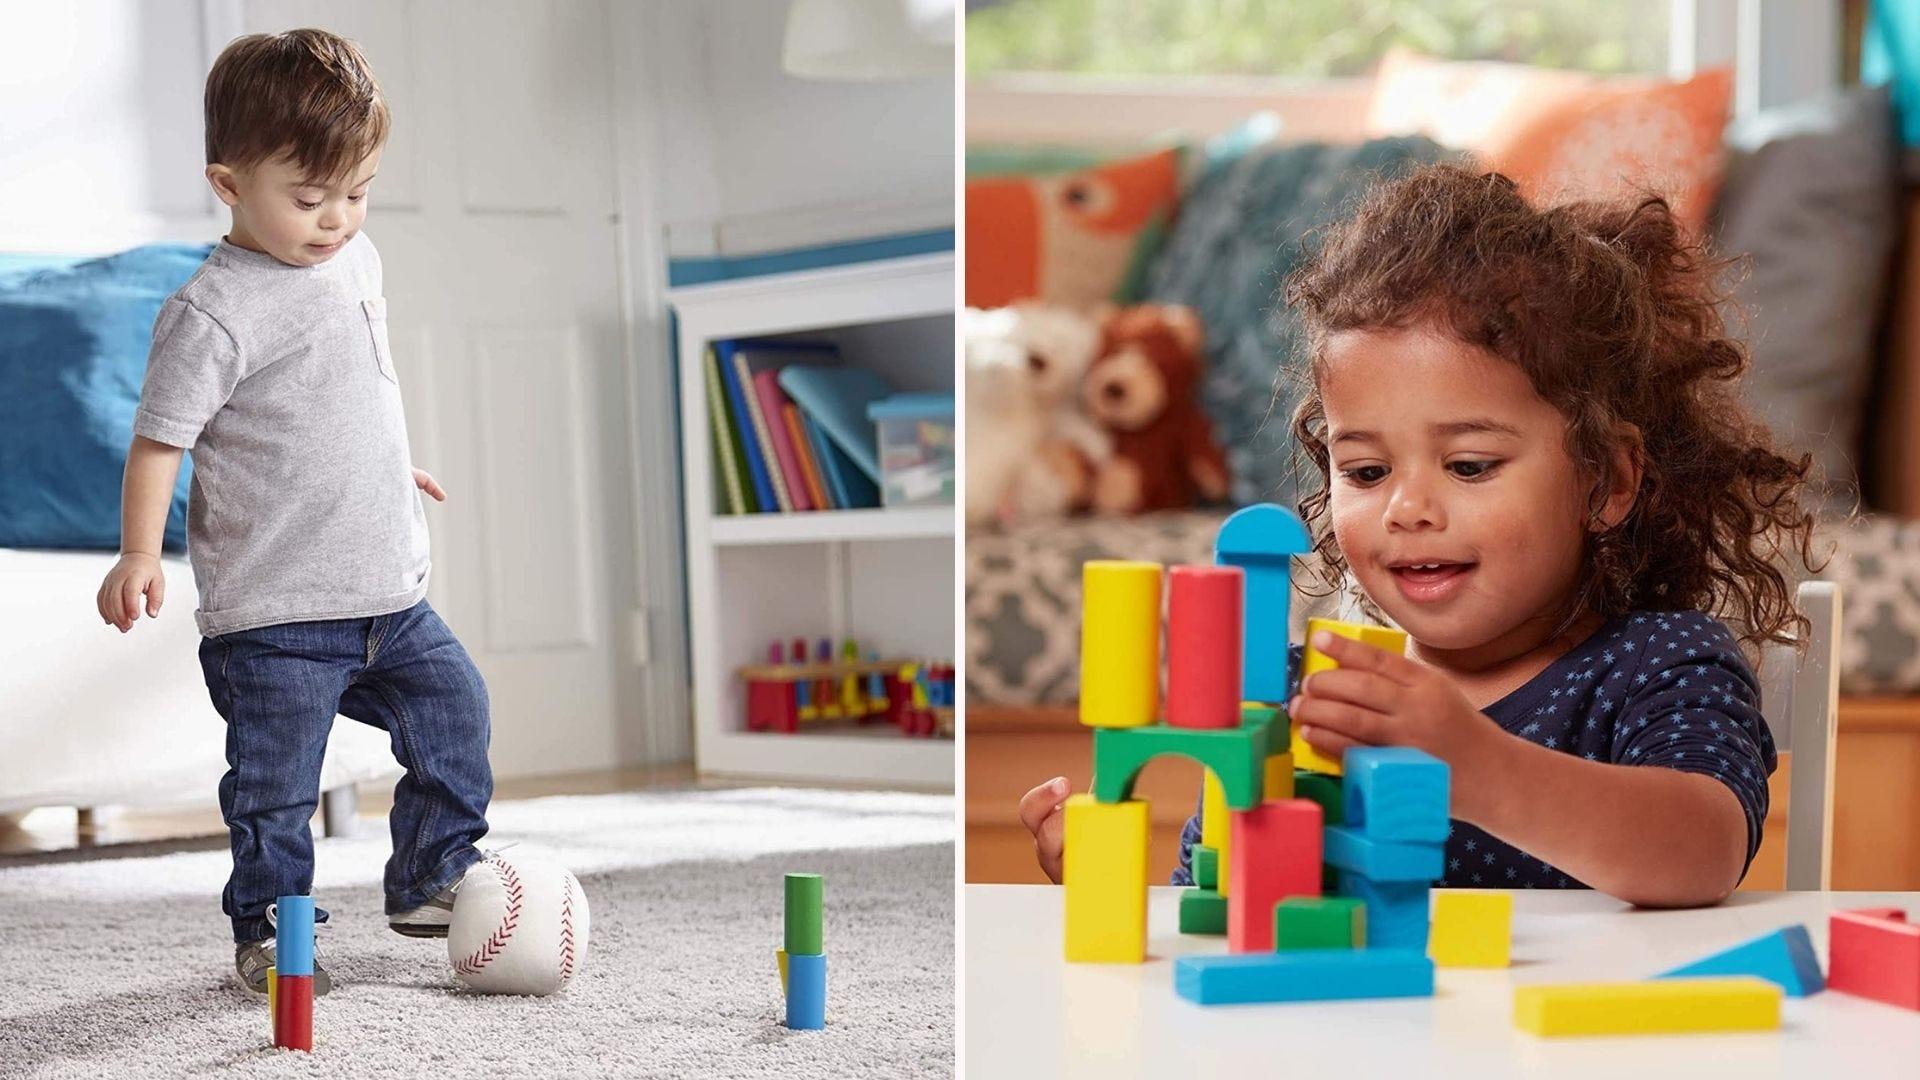 Two images of children playing with Melissa & Doug blocks.